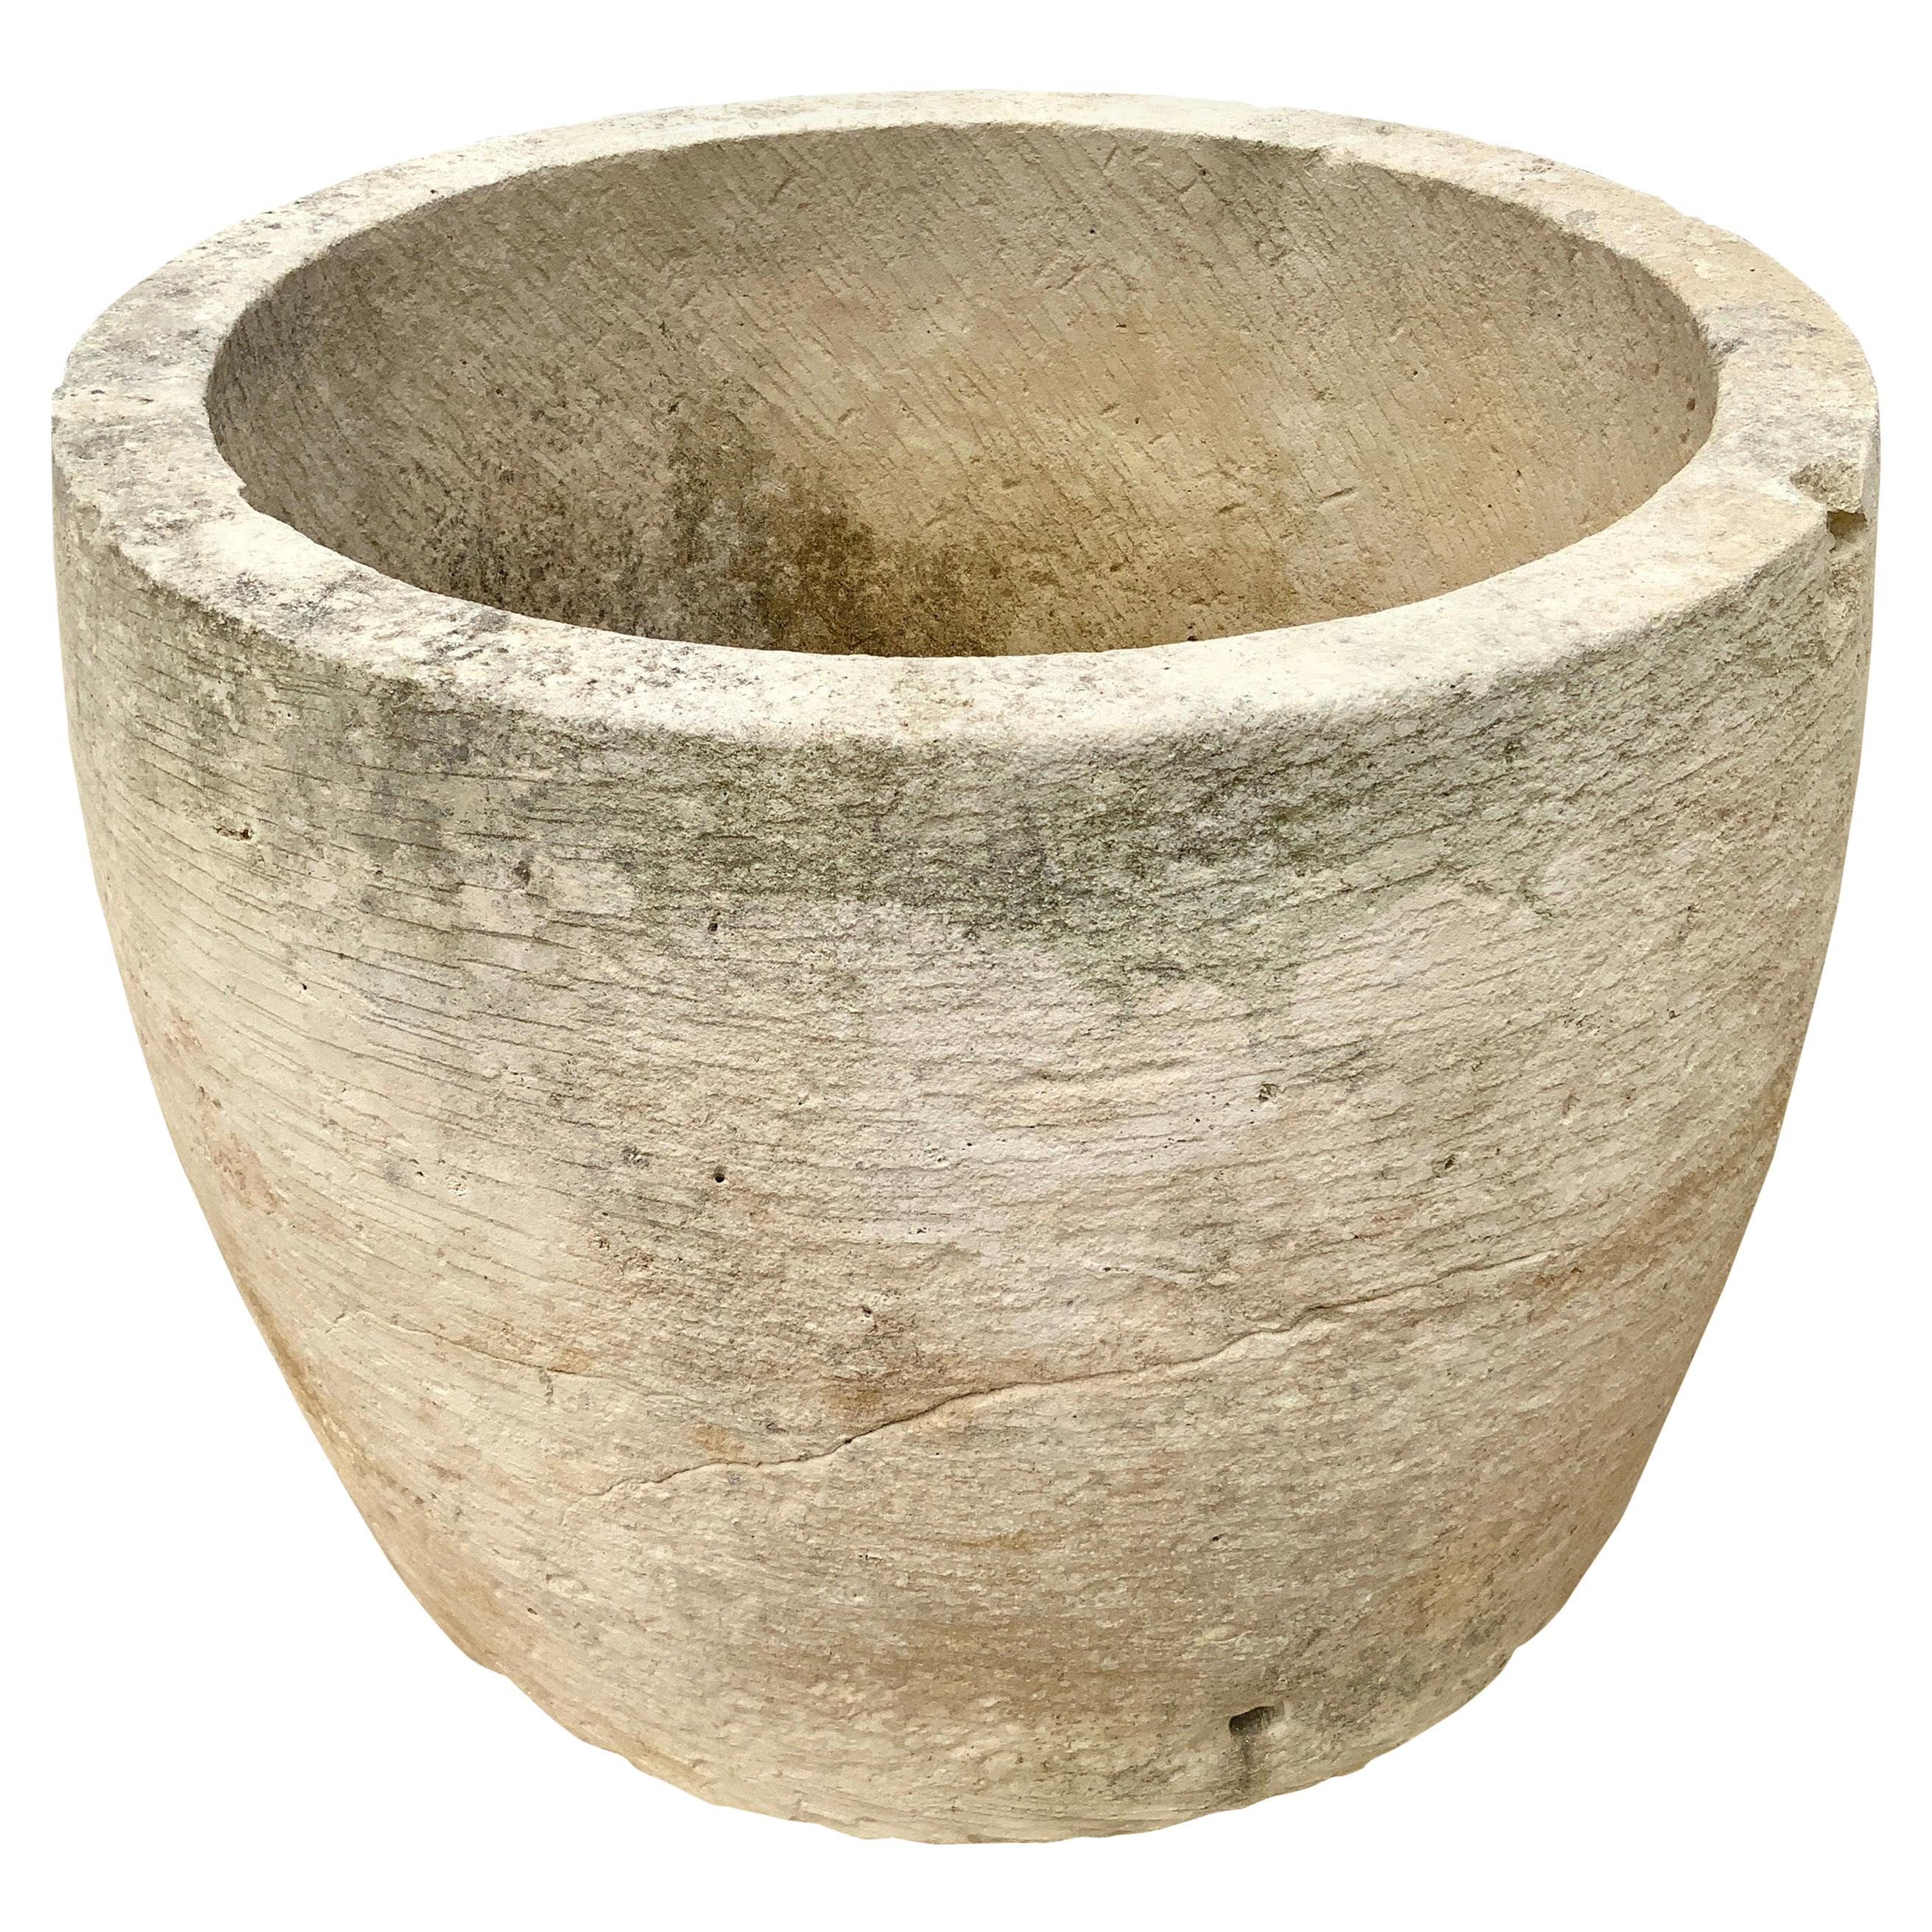 18th Century Limestone Trough from France